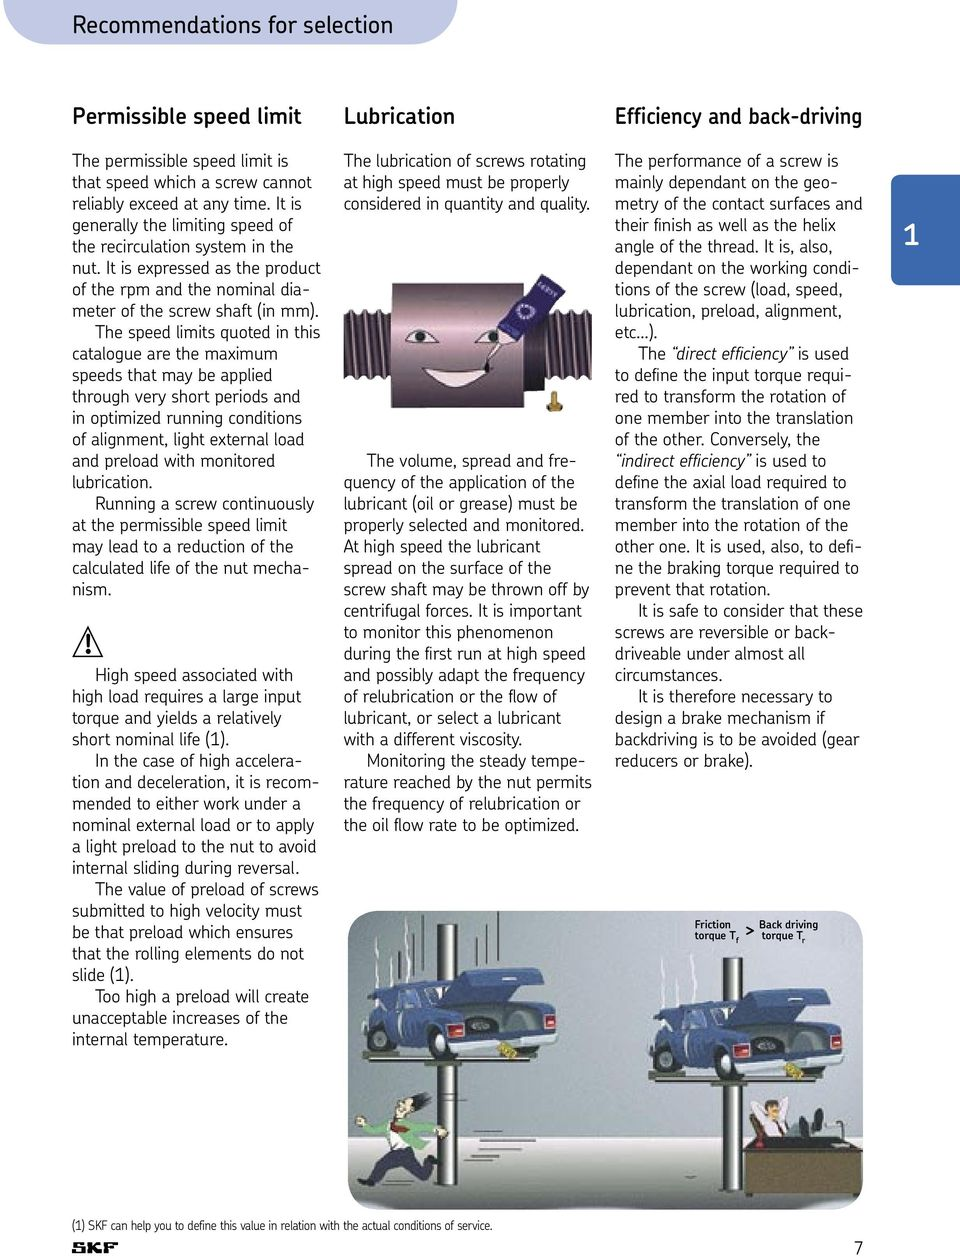 The speed limits quoted in this catalogue are the maximum speeds that may be applied through very short periods and in optimized running conditions of alignment, light external load and preload with